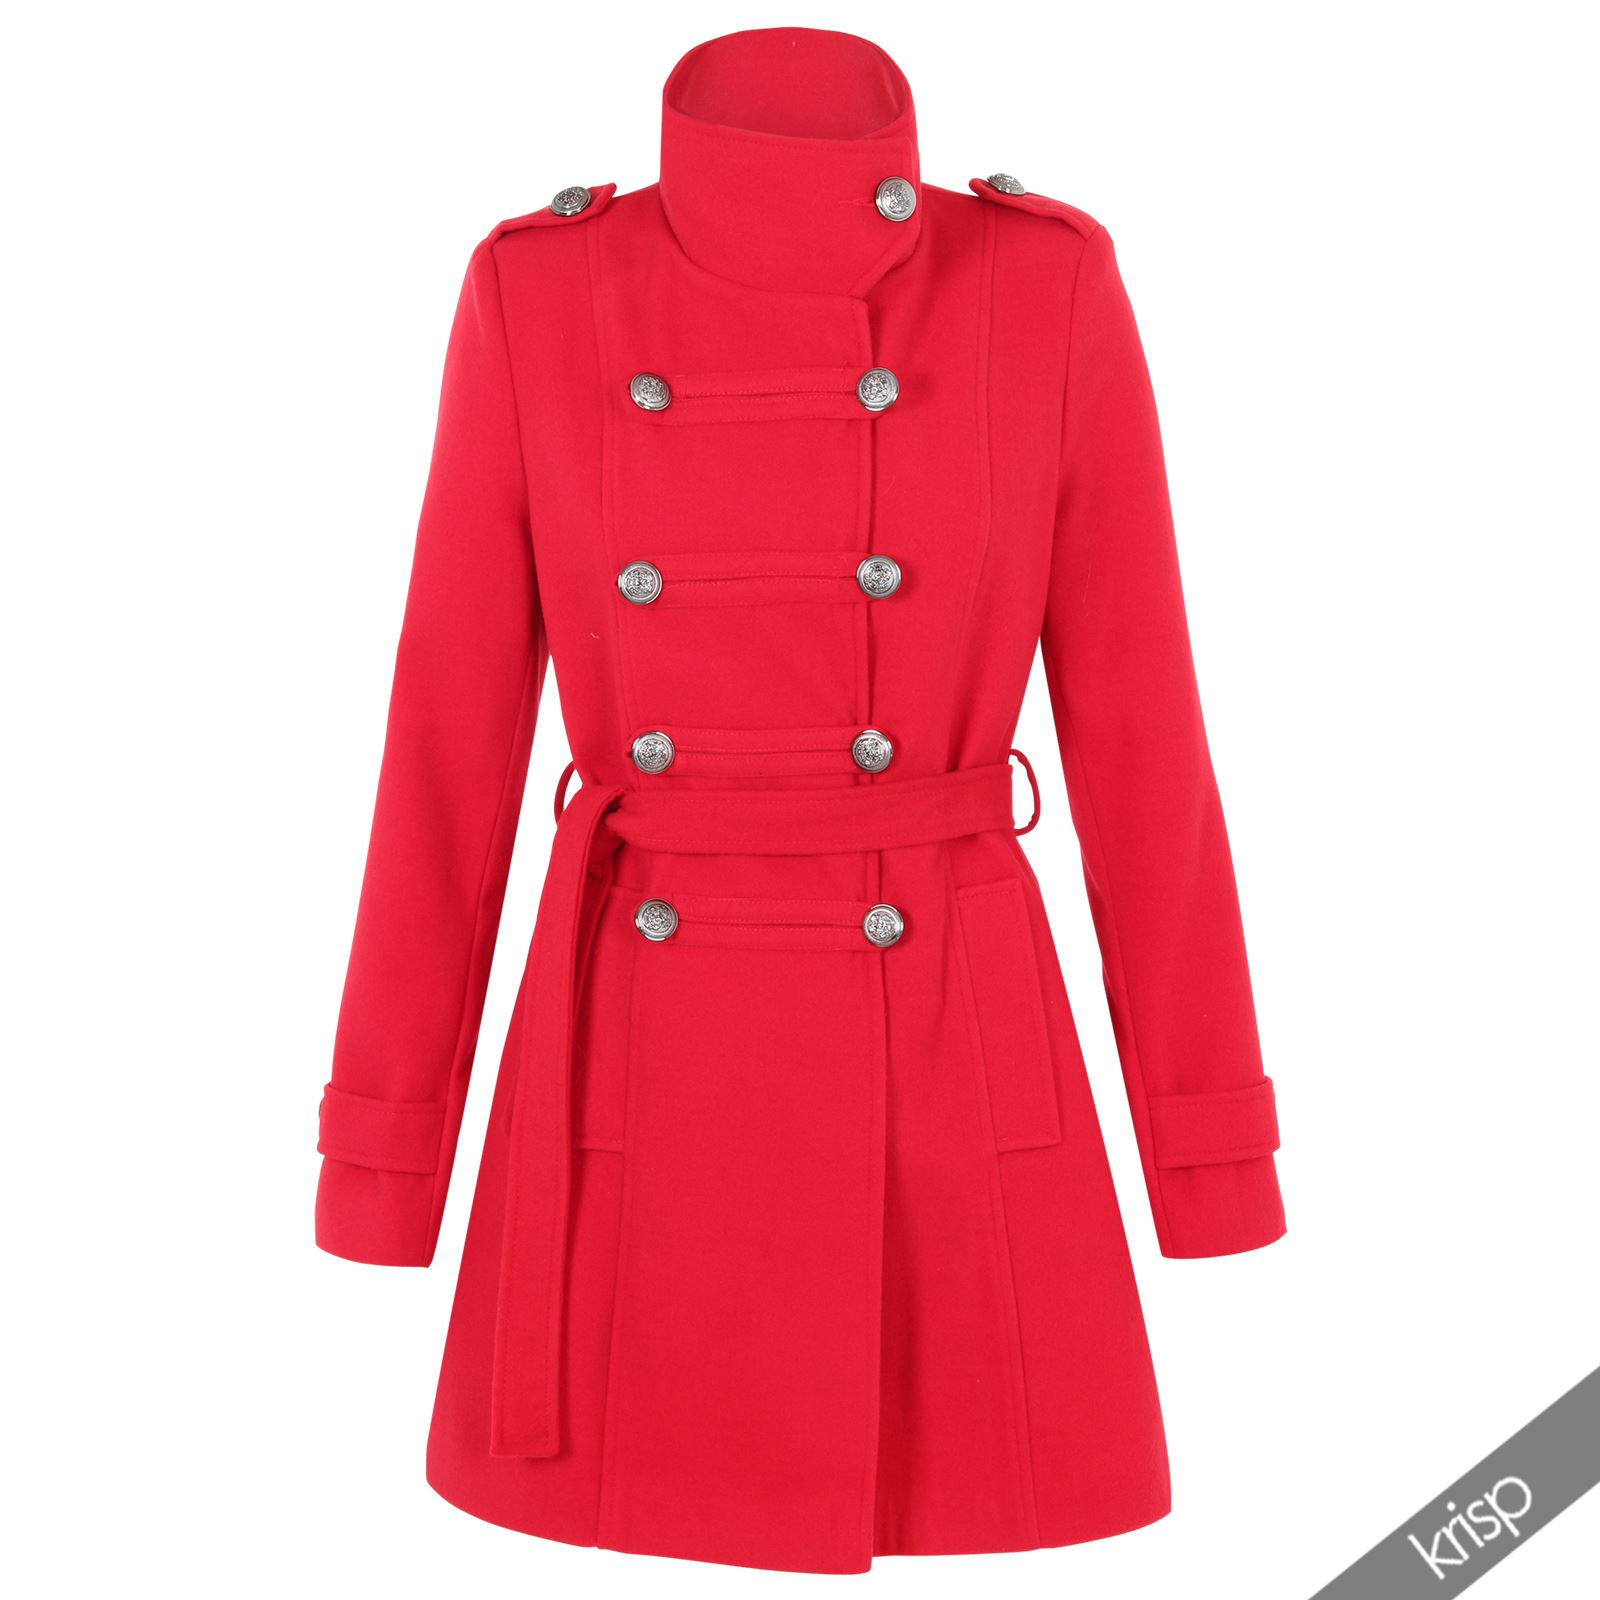 Double breasted jacket for women